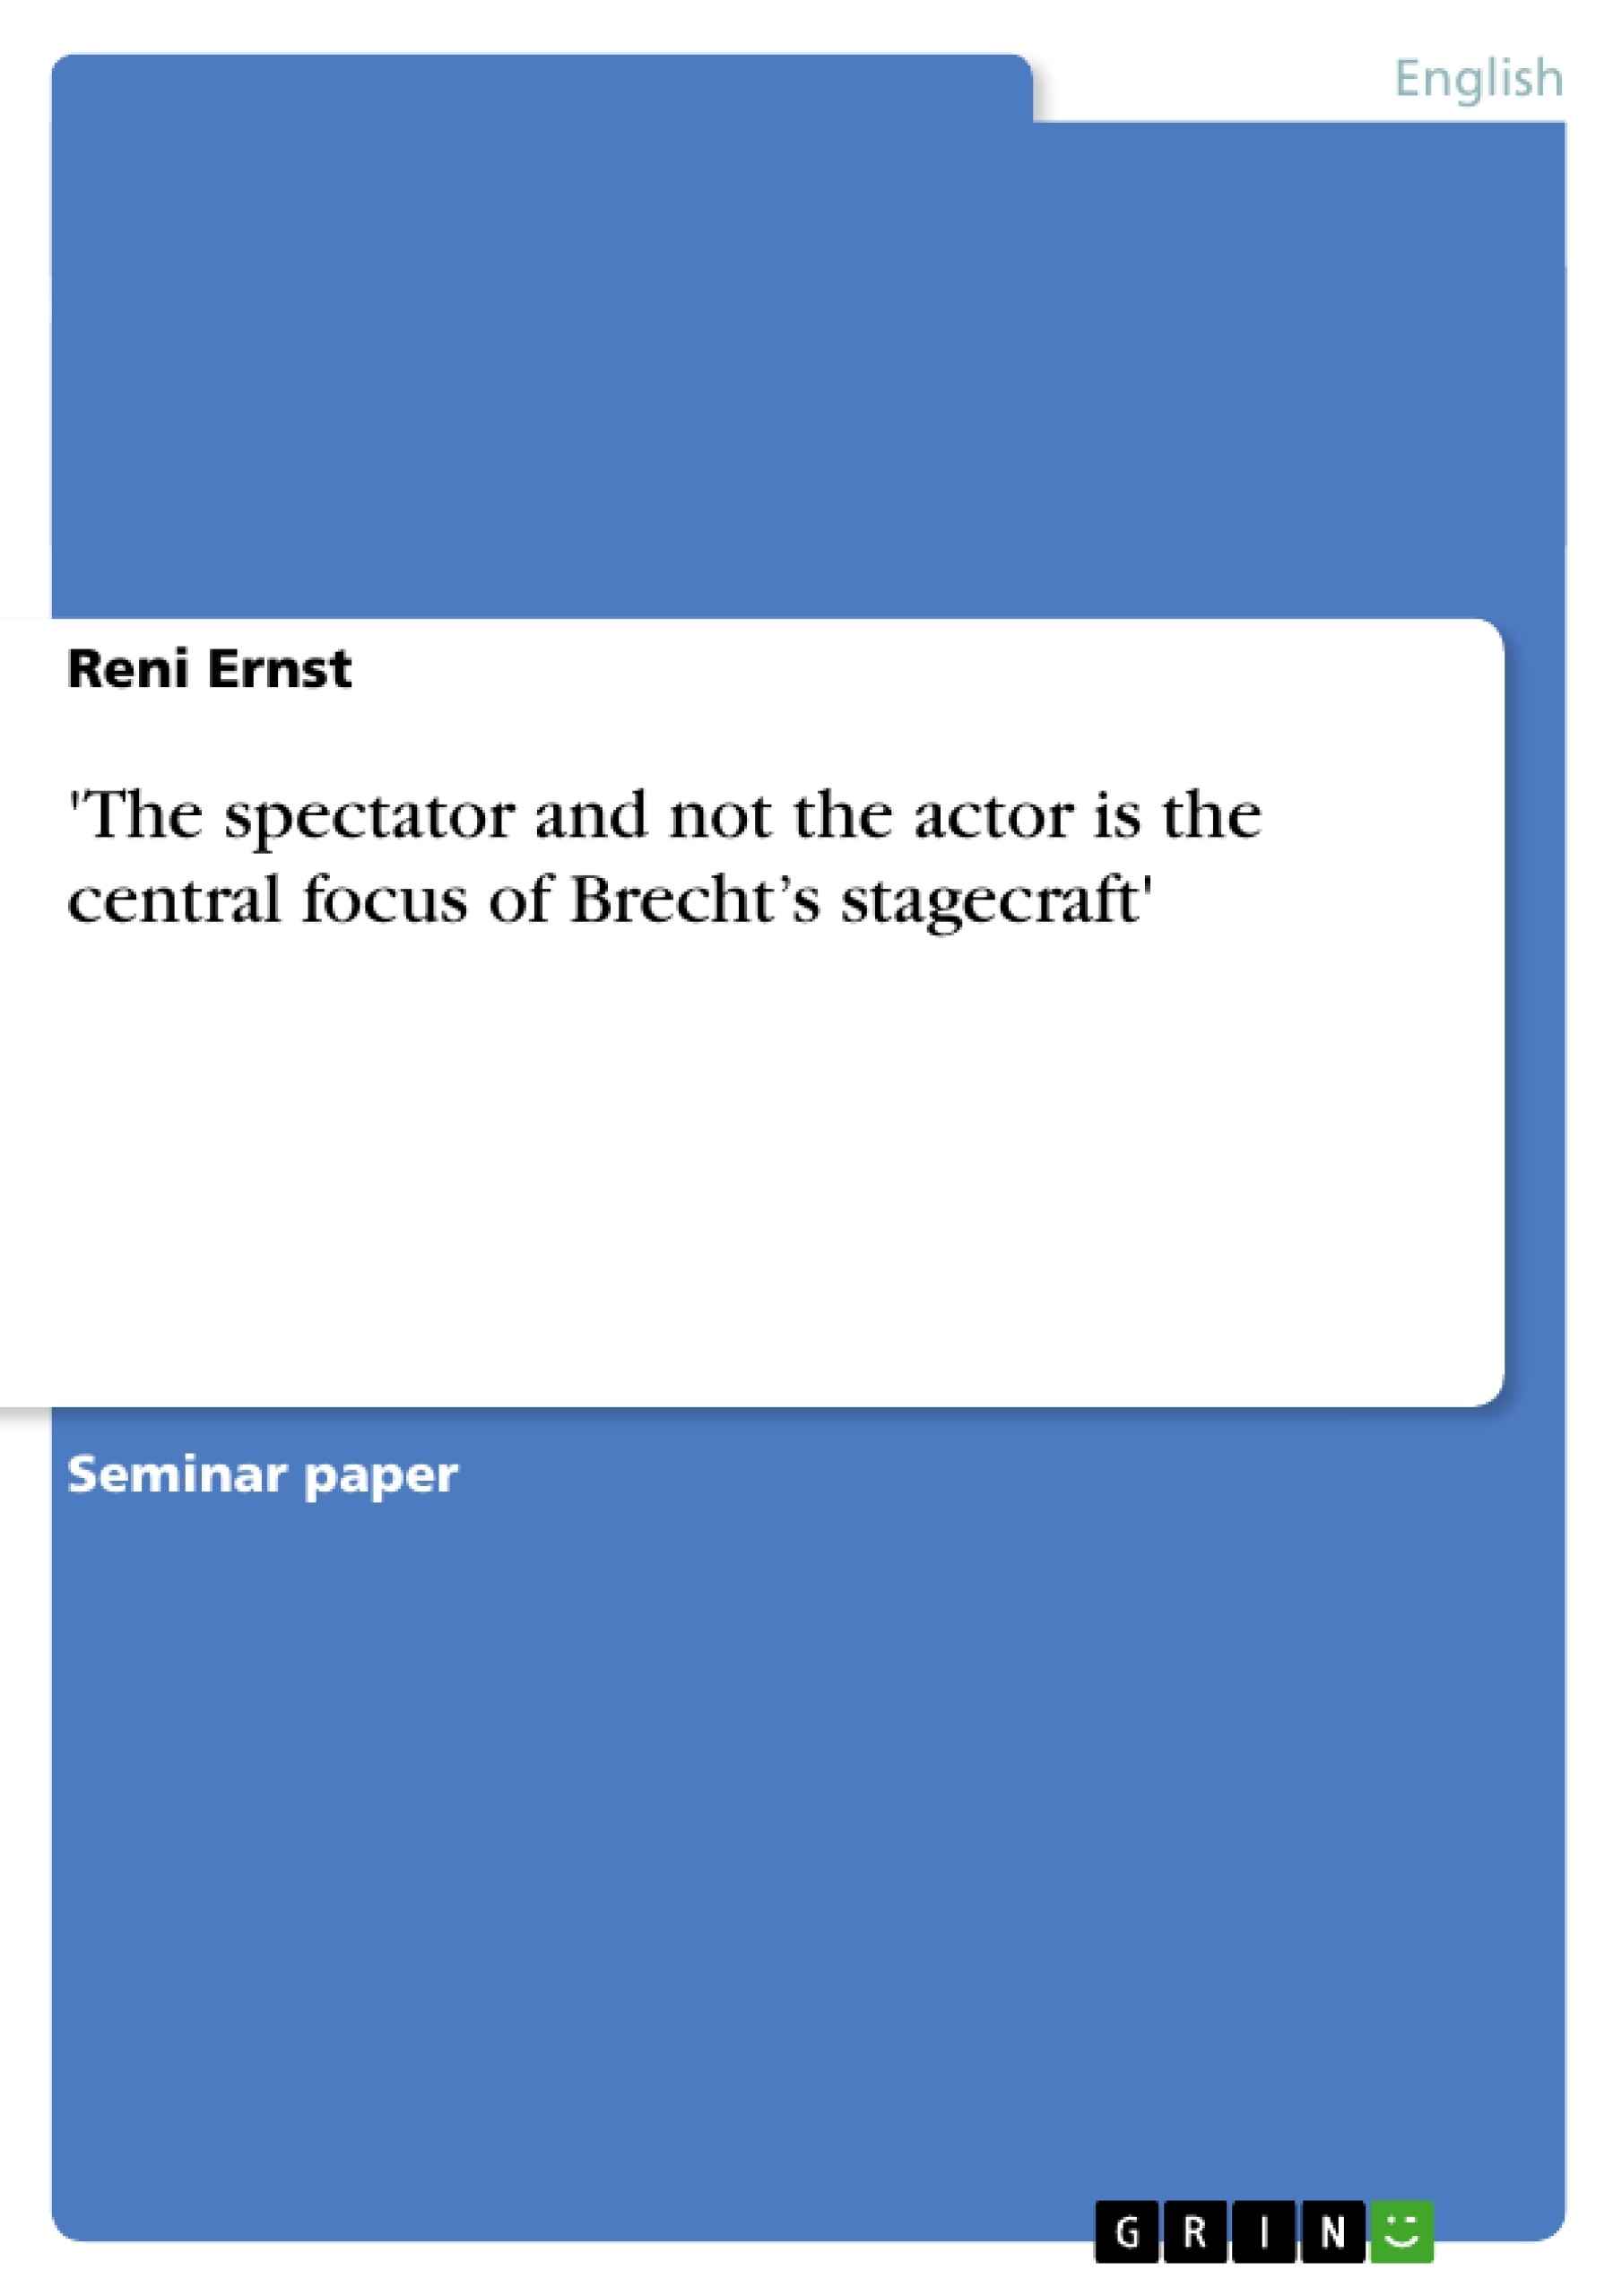 Title: 'The spectator and not the actor is the central focus of Brecht's stagecraft'